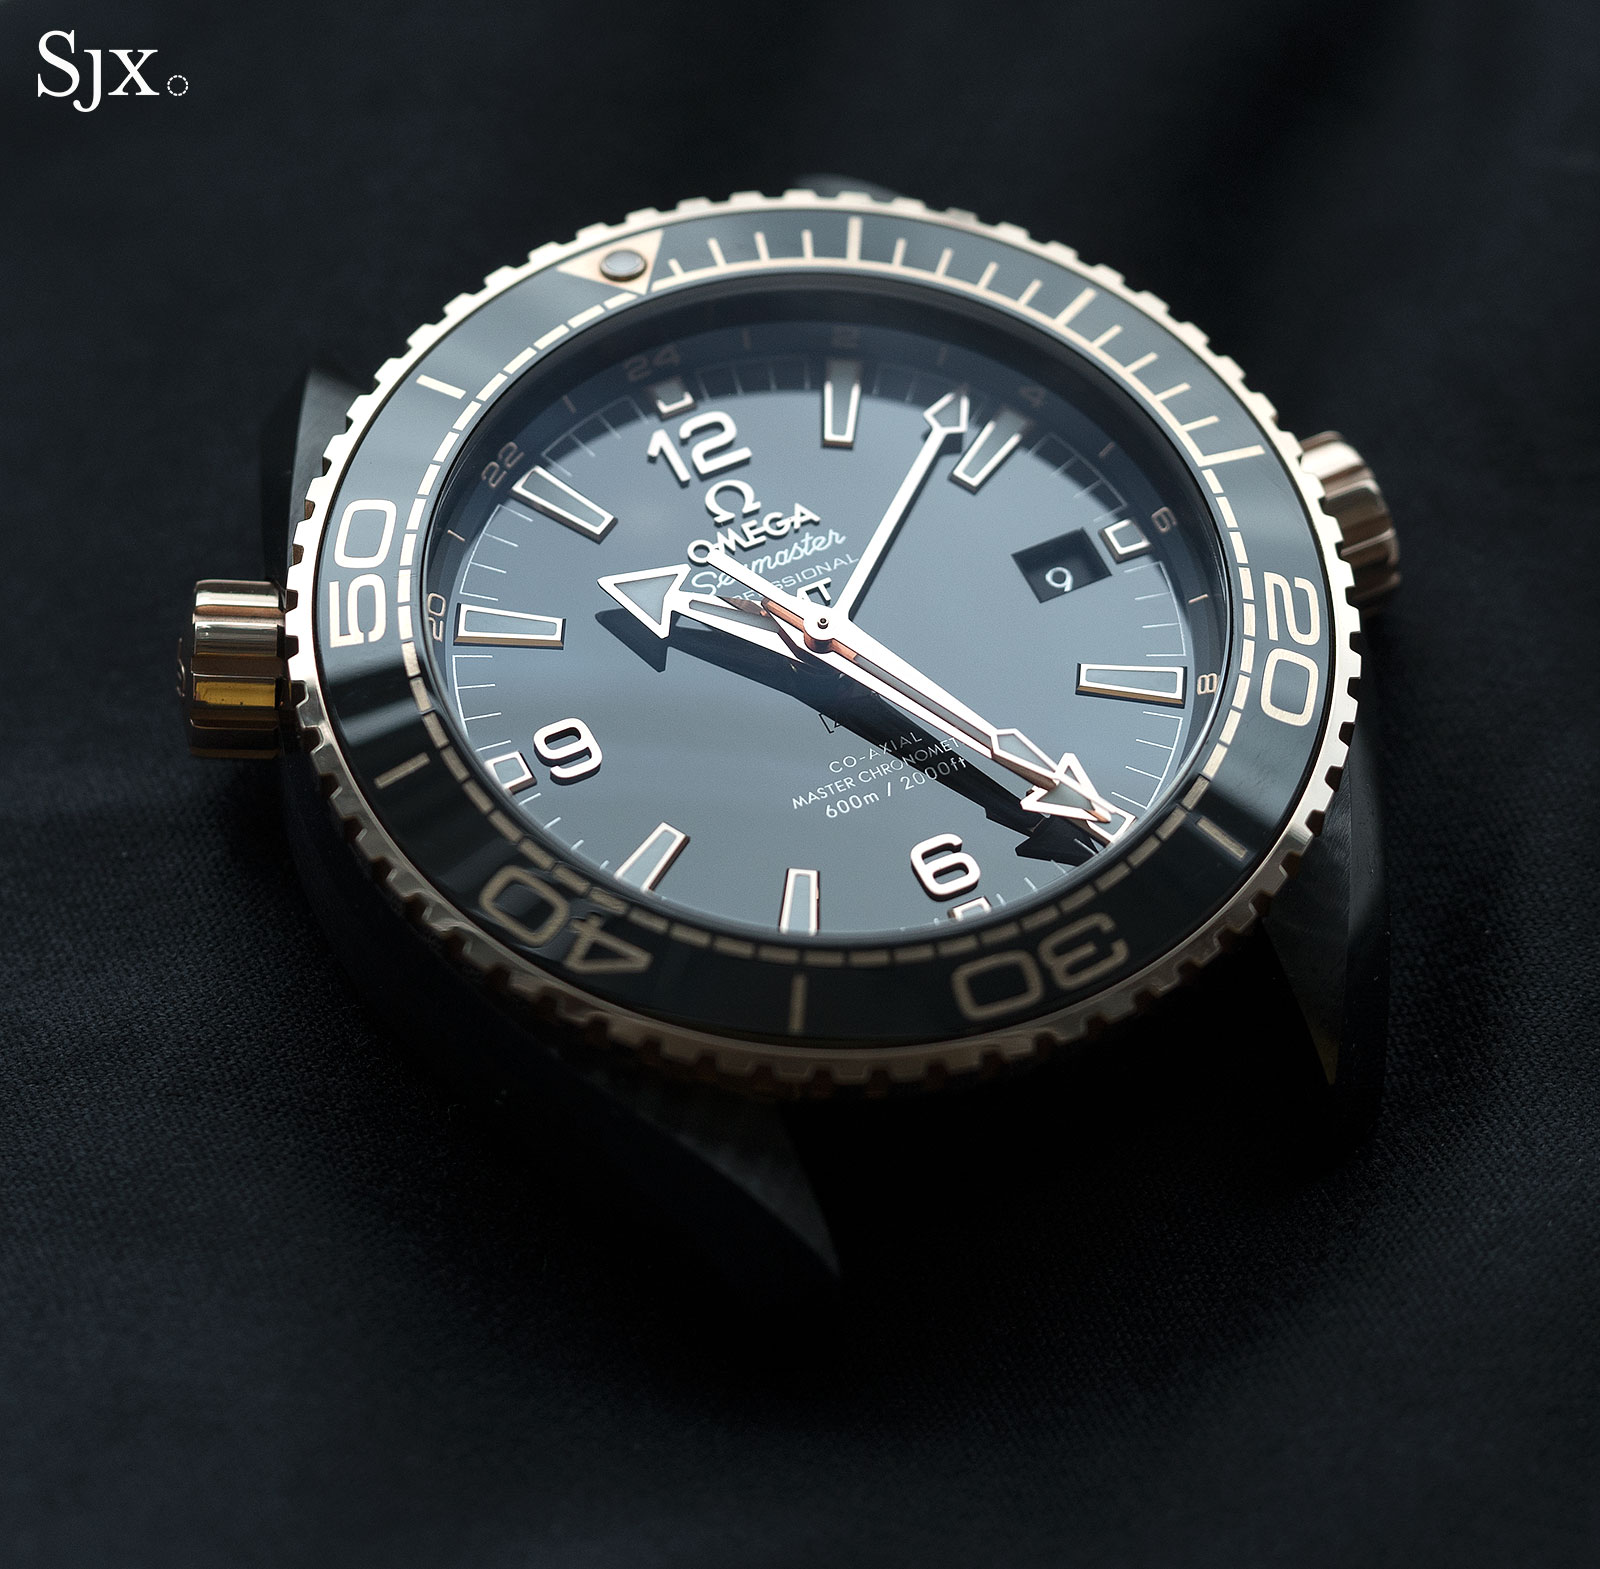 details second omega planet seamaster men pre watches ocean product gents hand stainless s mens watch owned steel